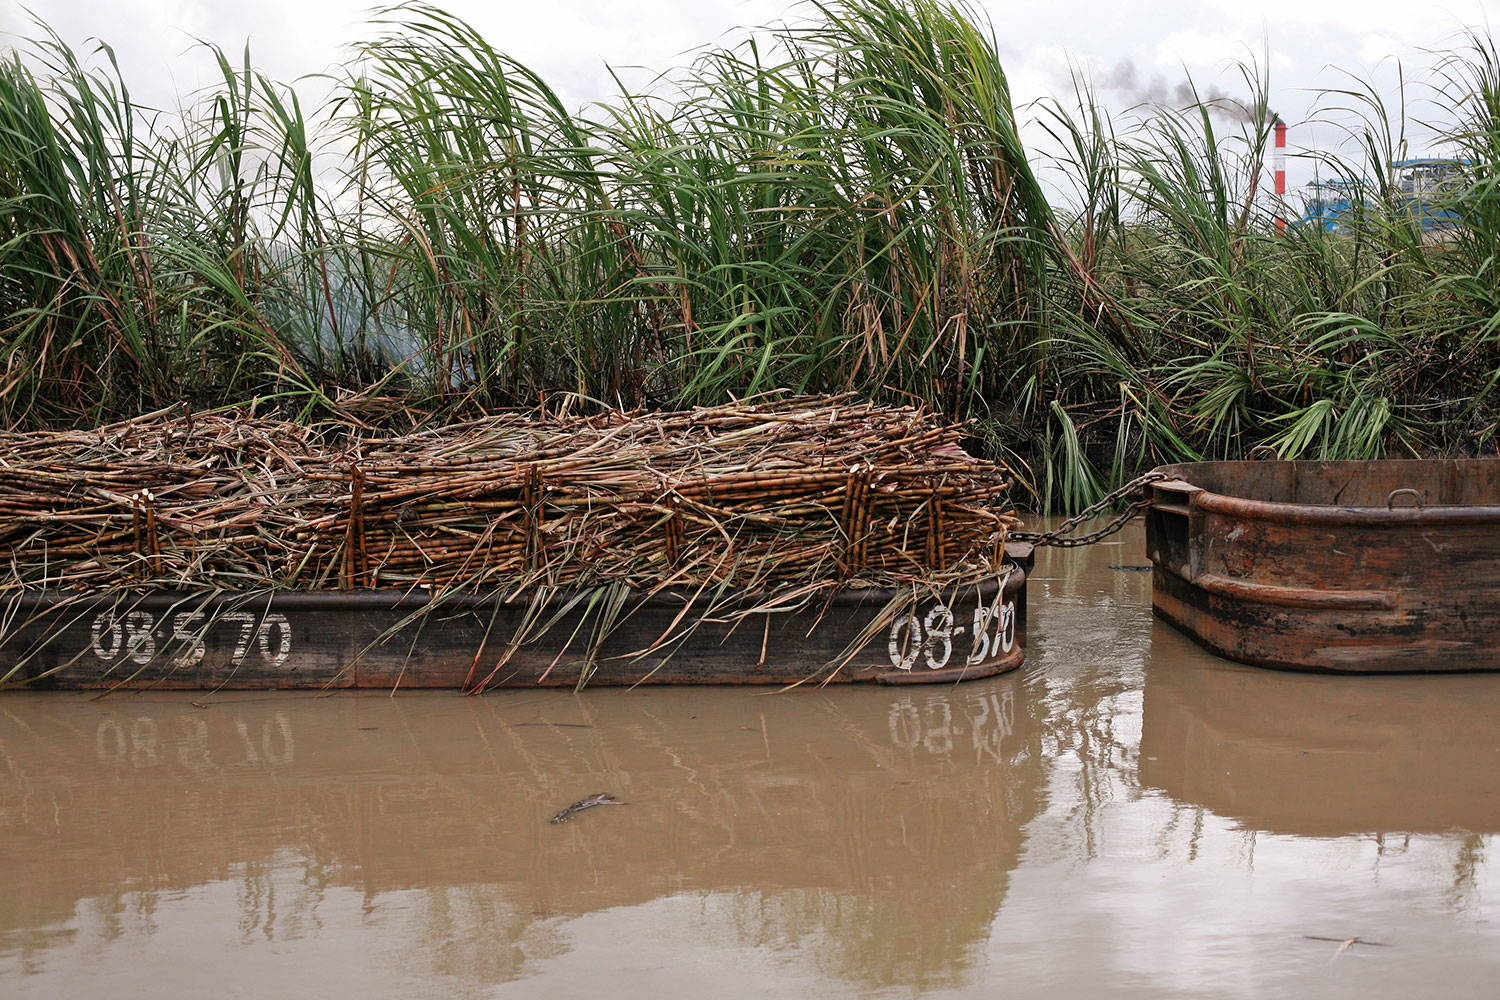 Boats filled with sugarcane on a muddy river with smokestacks visible in the background